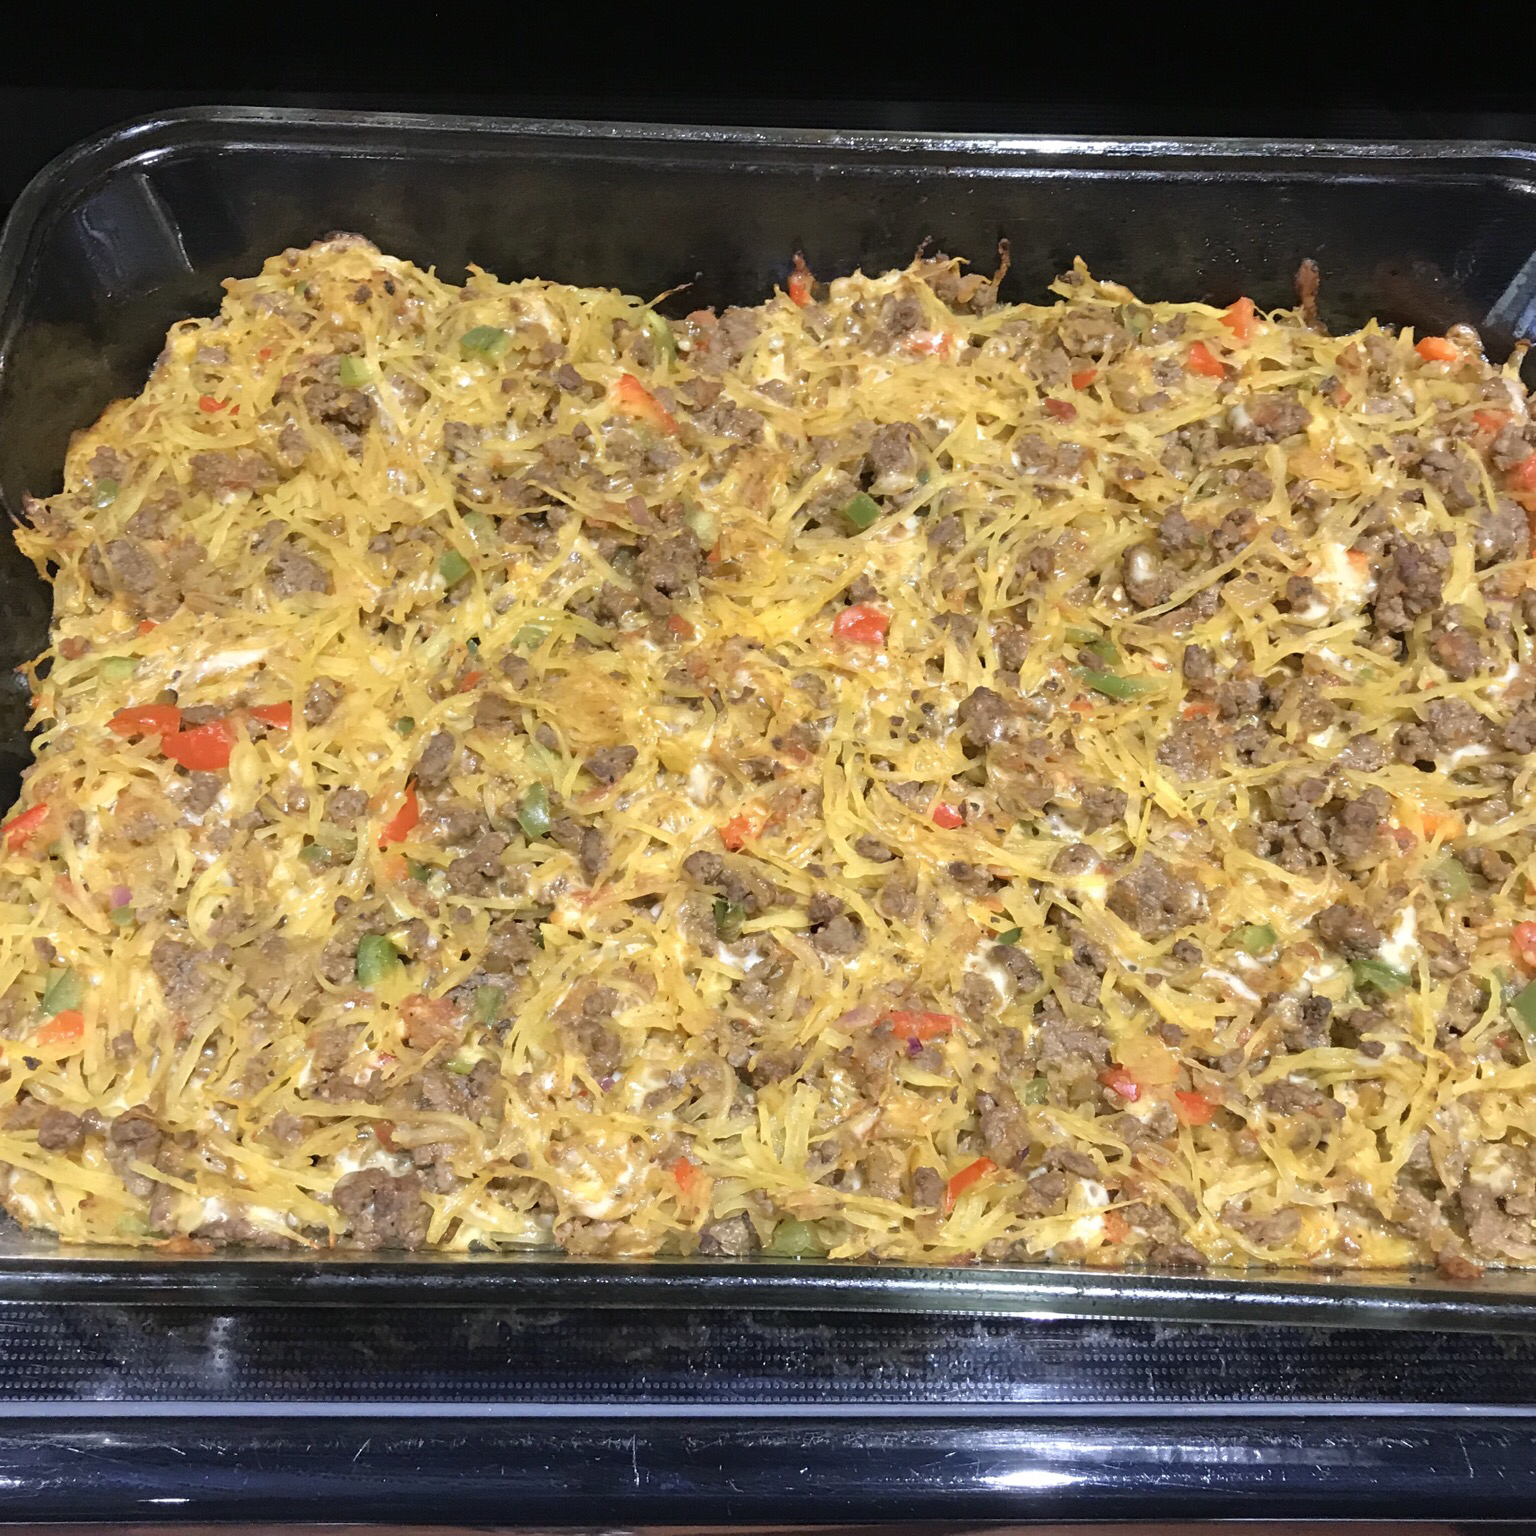 Baked Spaghetti Squash with Beef and Veggies Beth Walker